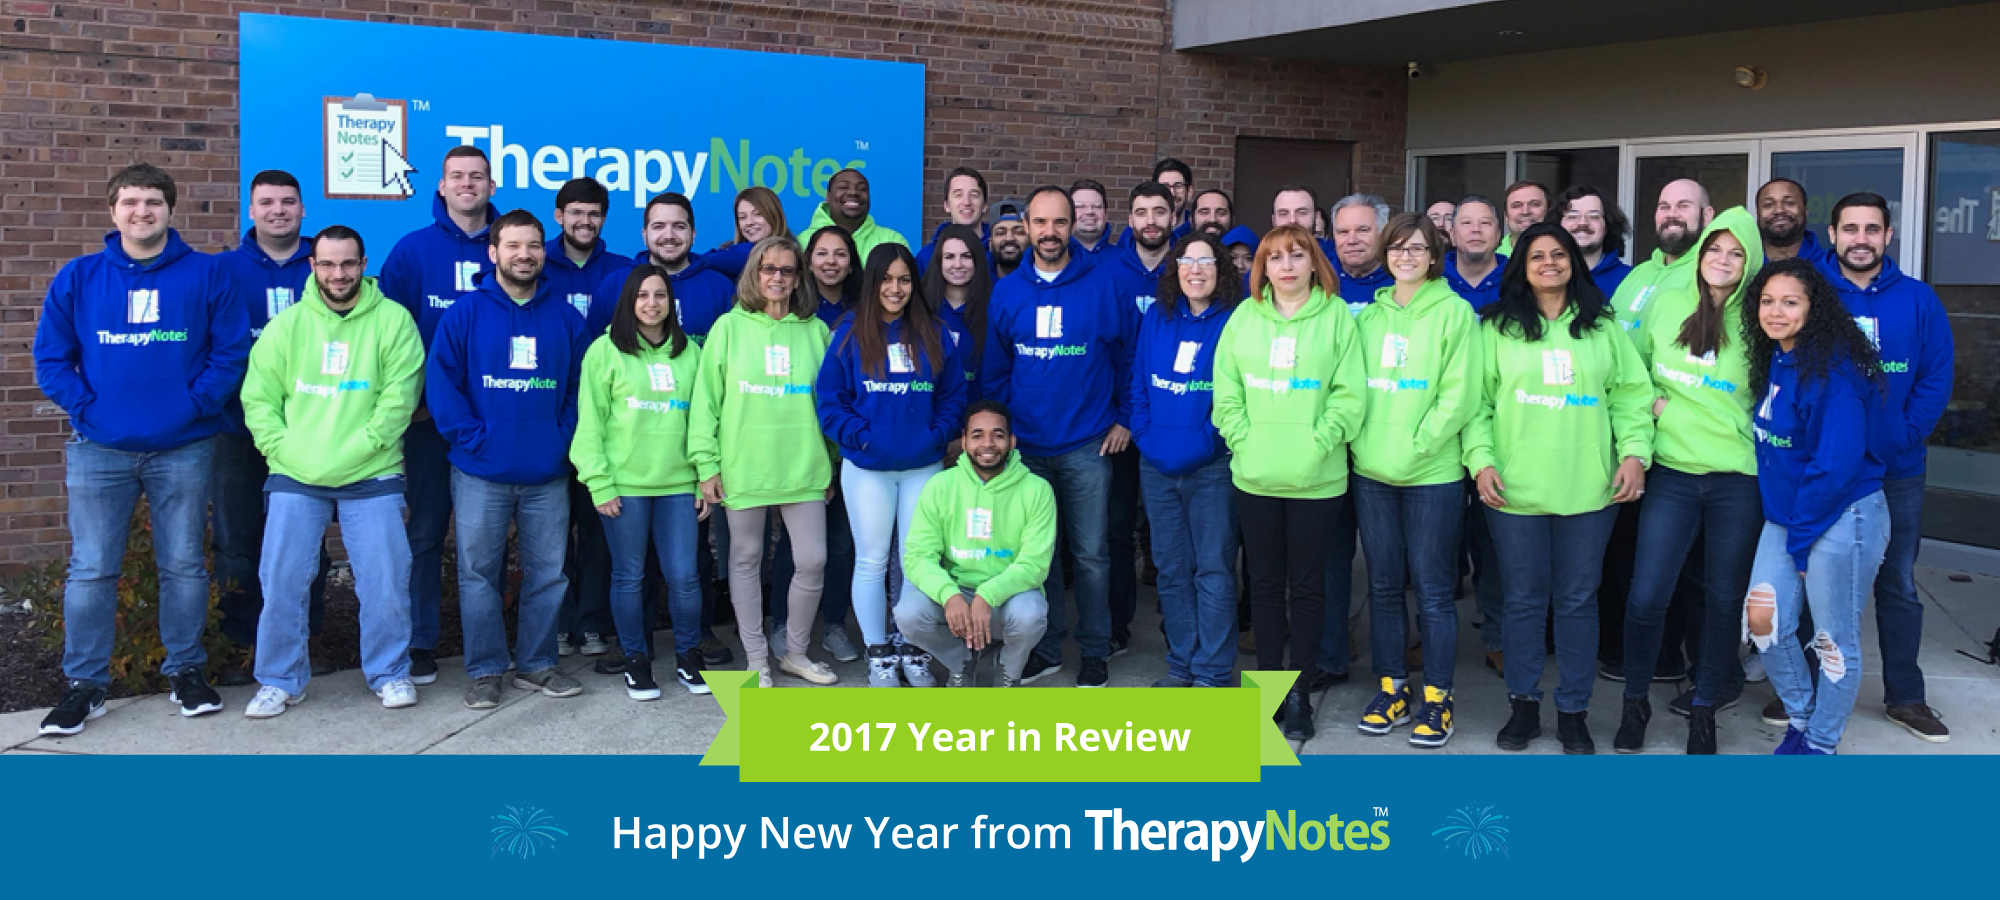 TherapyNotes team